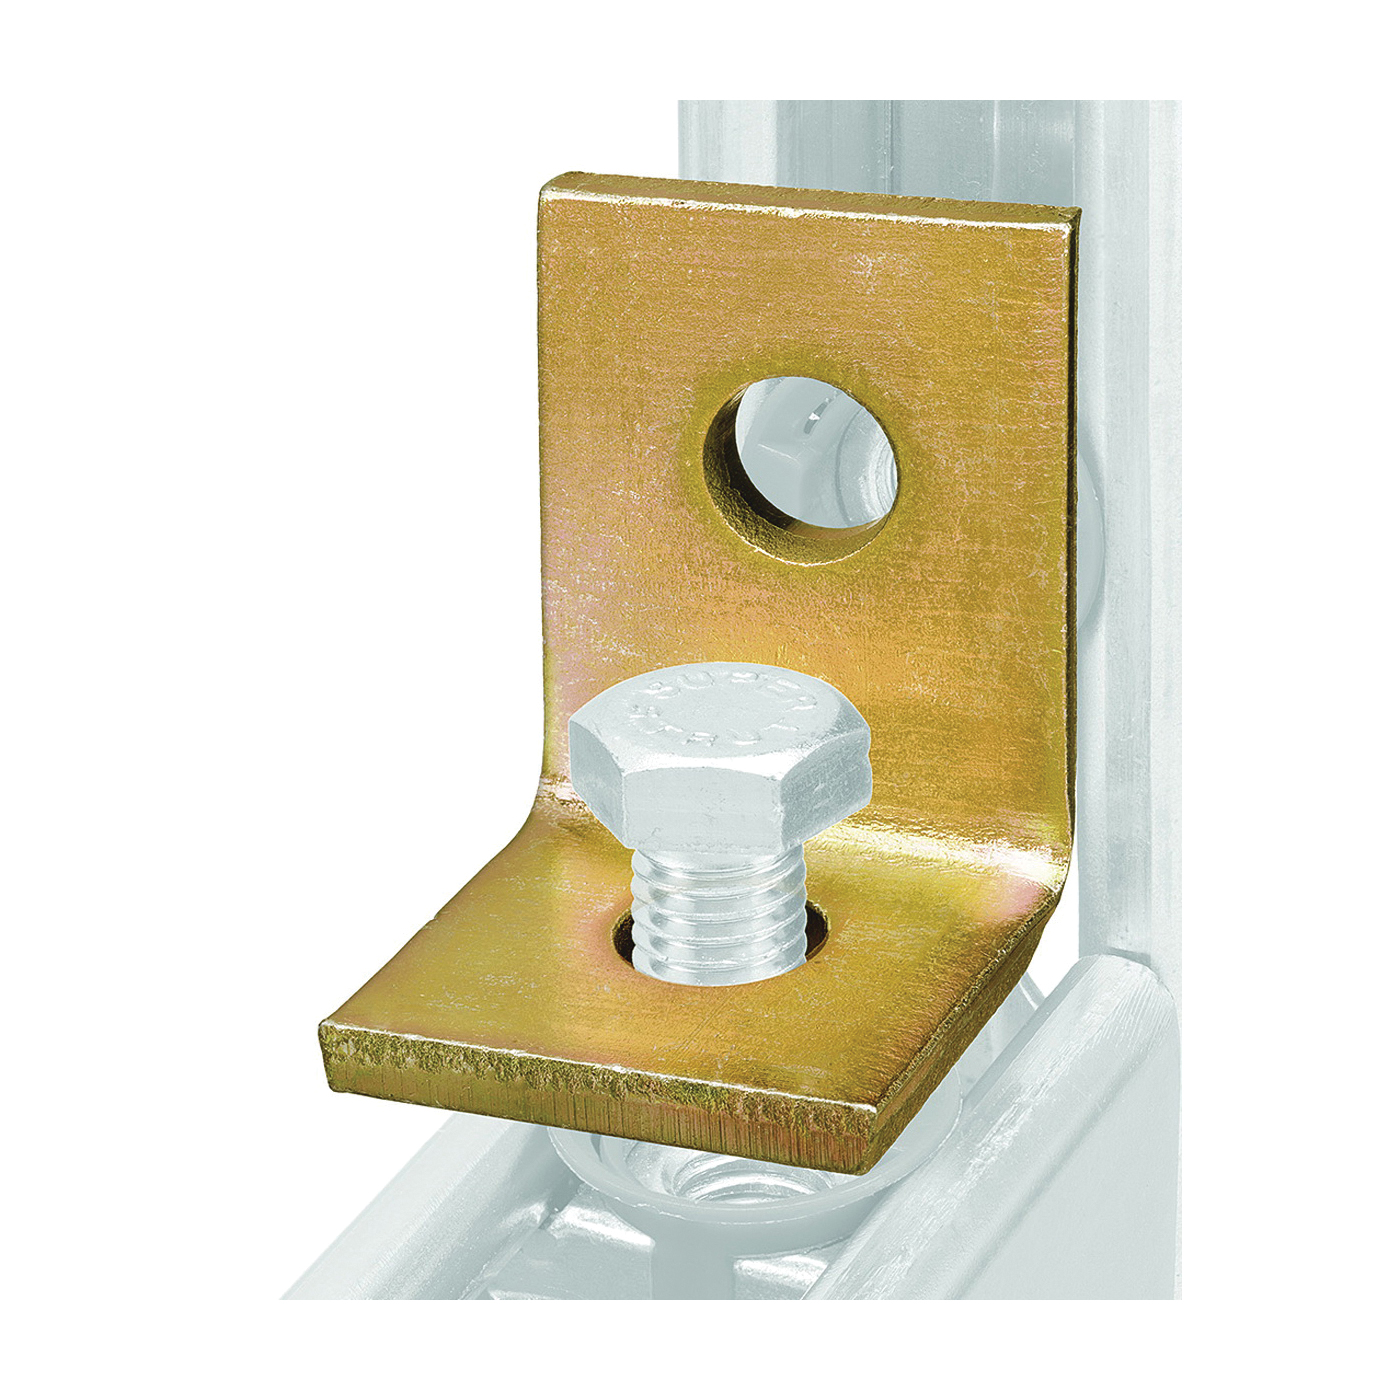 Picture of SuperStrut 200 Series ZAB201-10 Angle Bracket Fitting, Steel, Gold, Galvanized